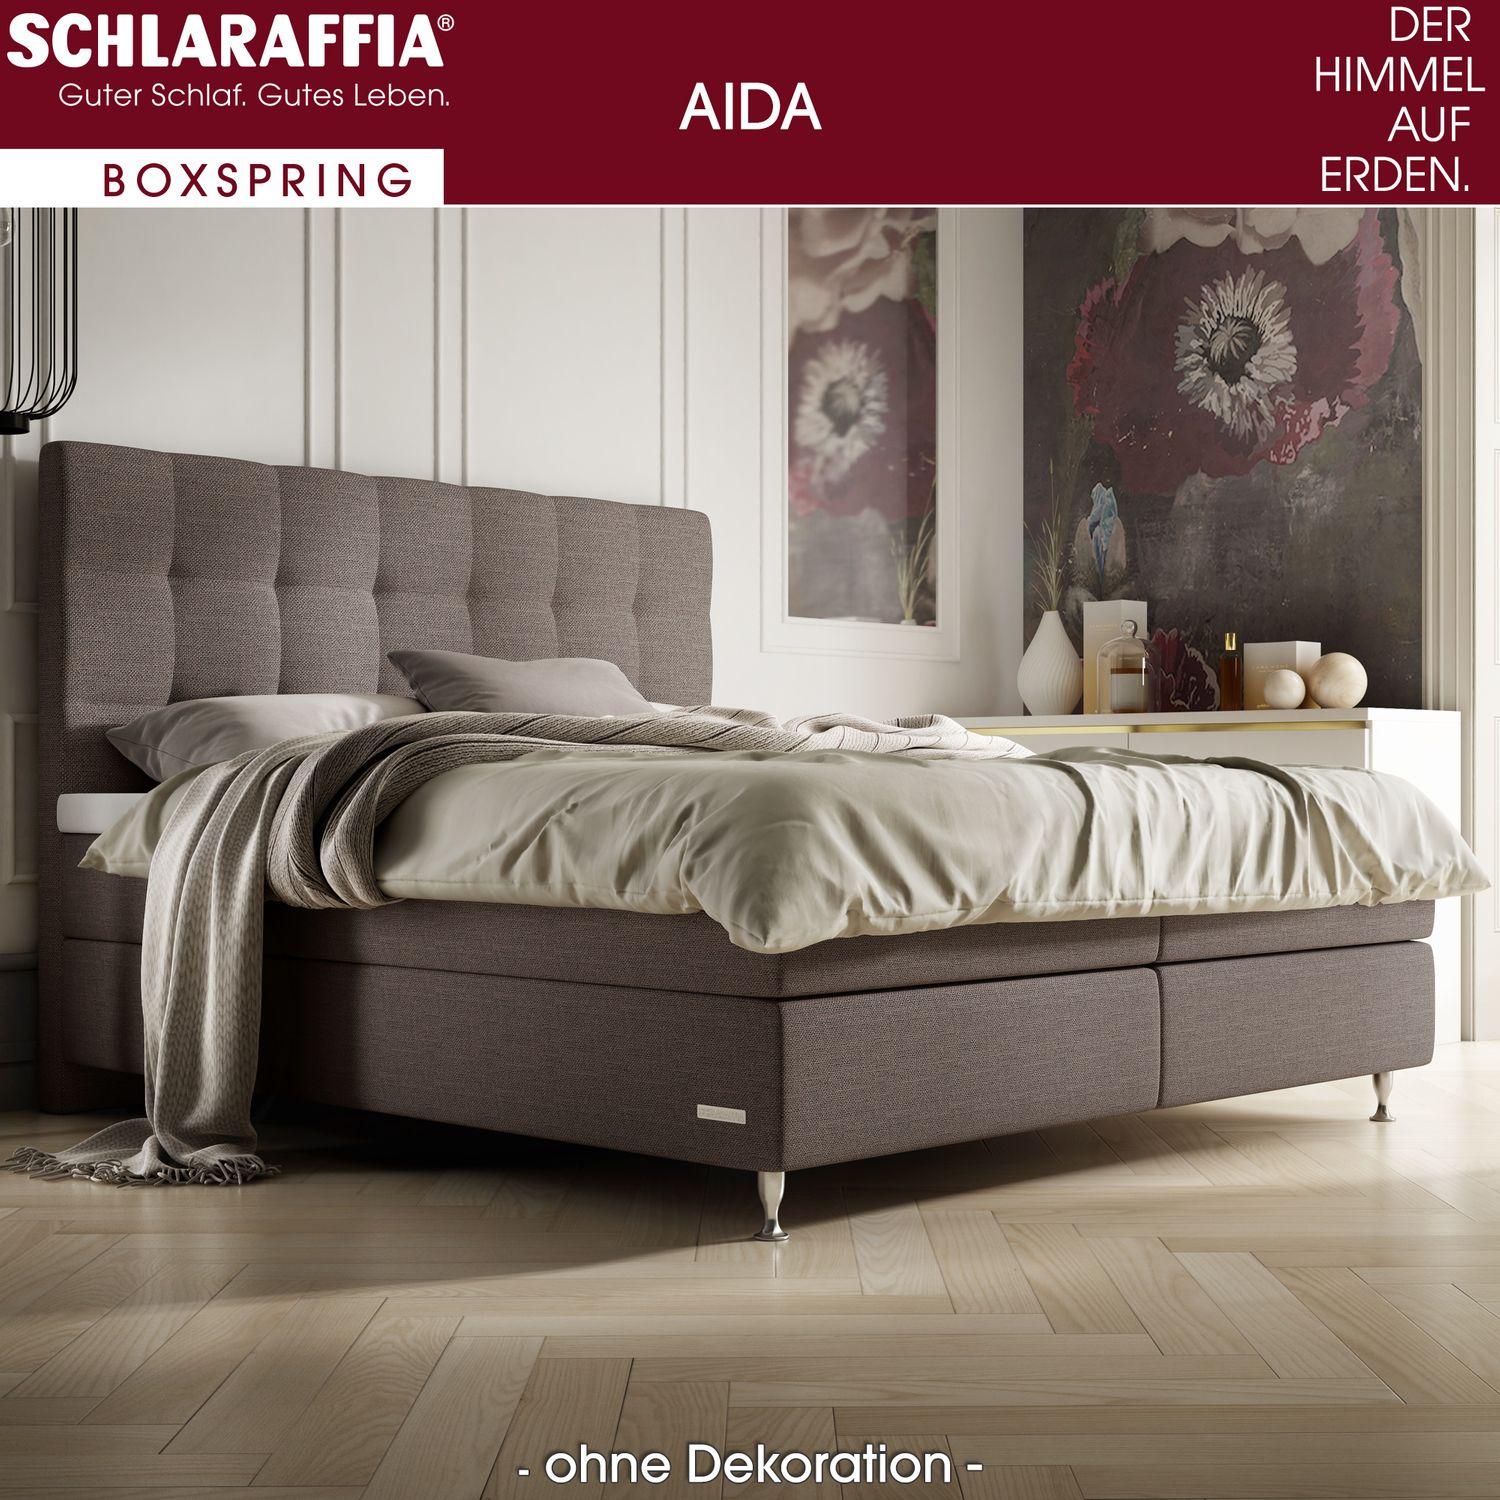 schlaraffia aida box cubic boxspringbett 180x220 cm boxspringbetten nach gr e 180 x 220 cm. Black Bedroom Furniture Sets. Home Design Ideas